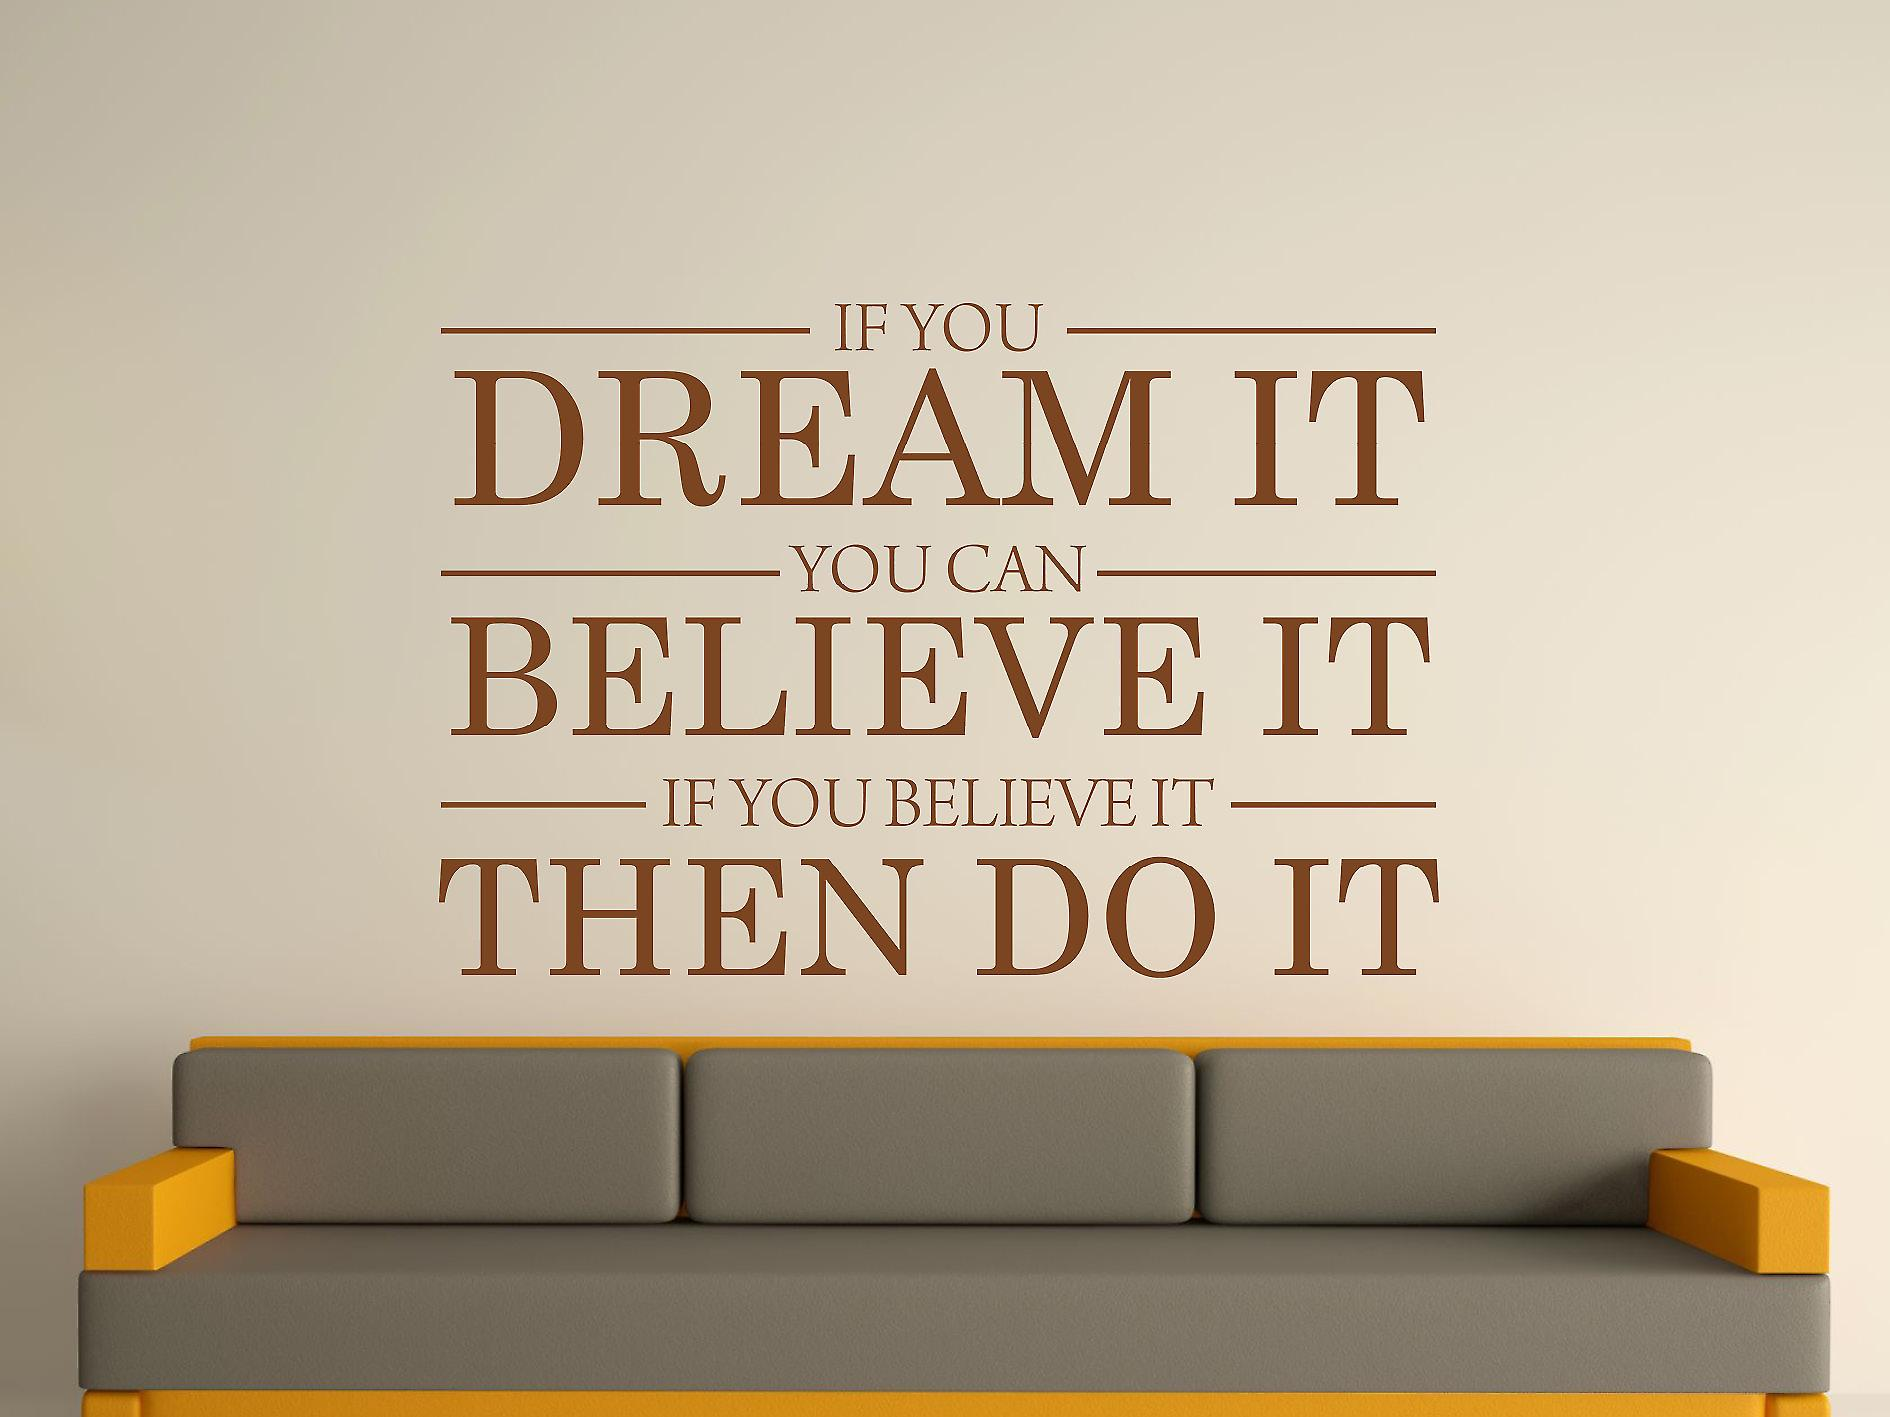 Dream It Believe It Do It Wall Art Sticker - Brown